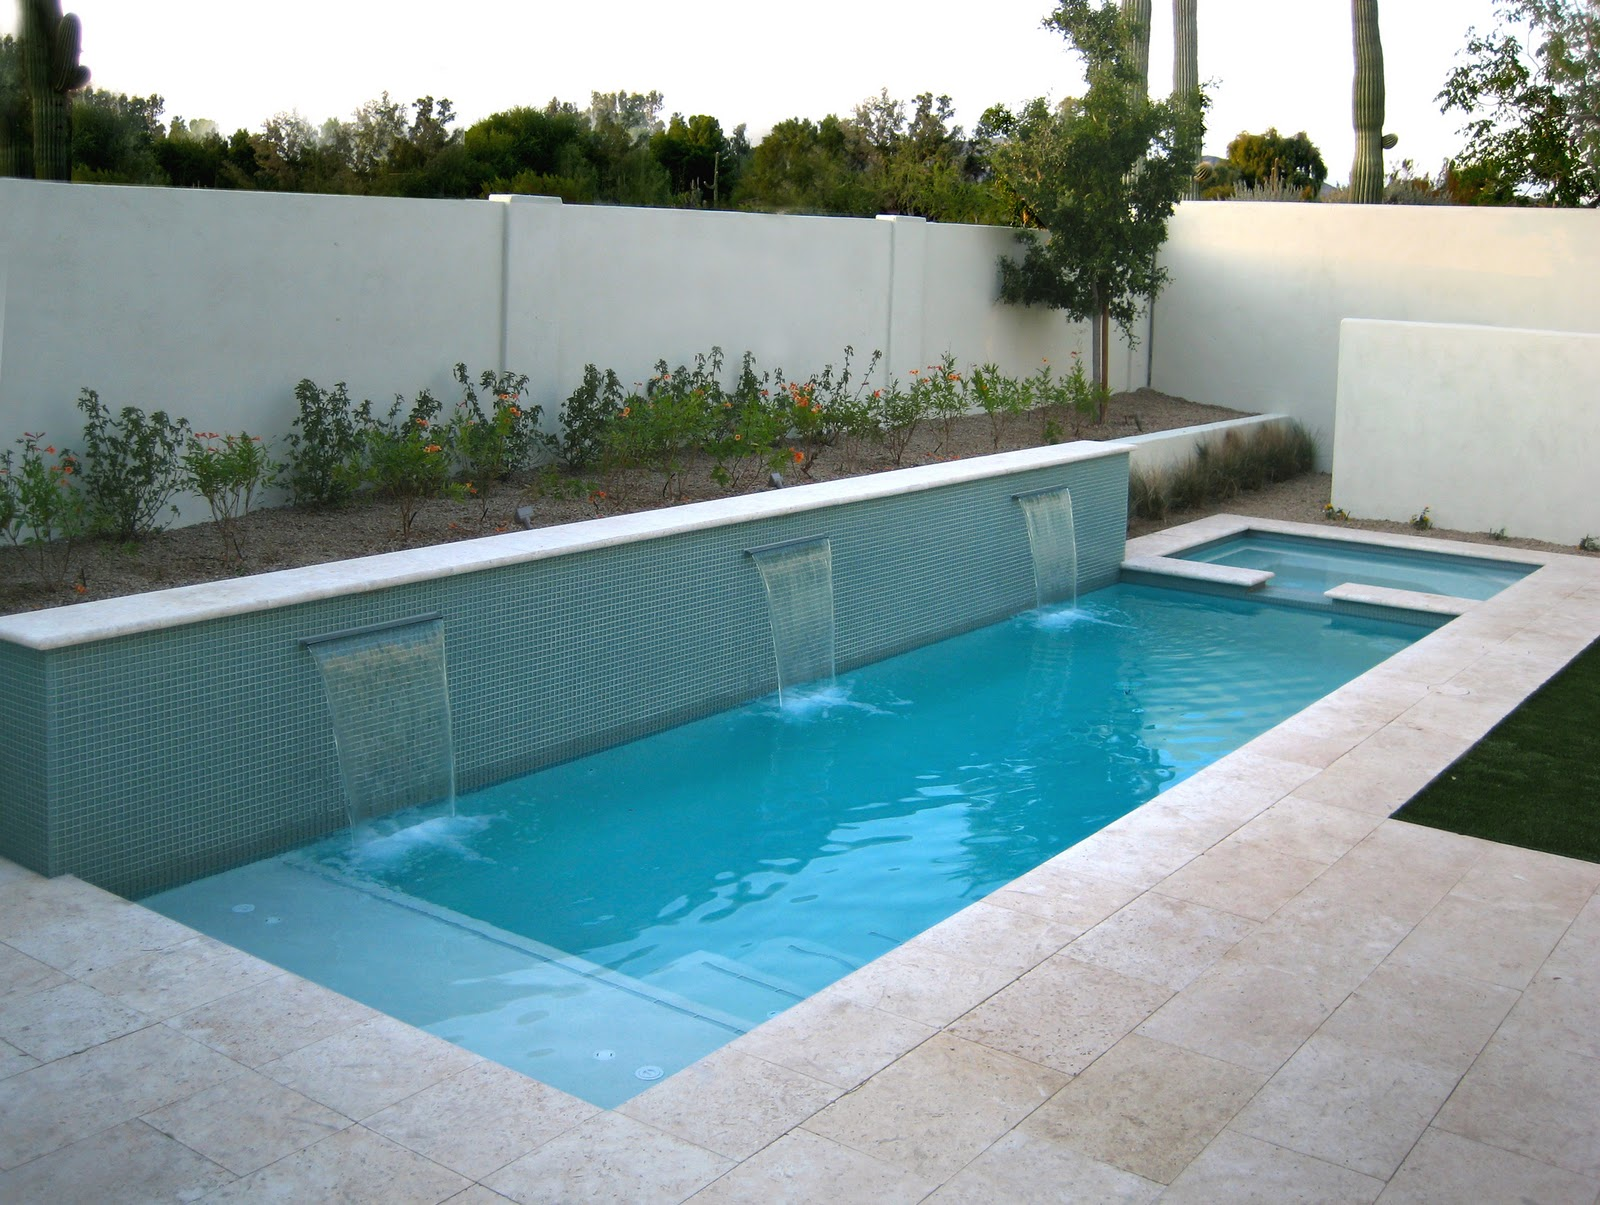 25 fabulous small backyard designs with swimming pool for Small swimming pool design